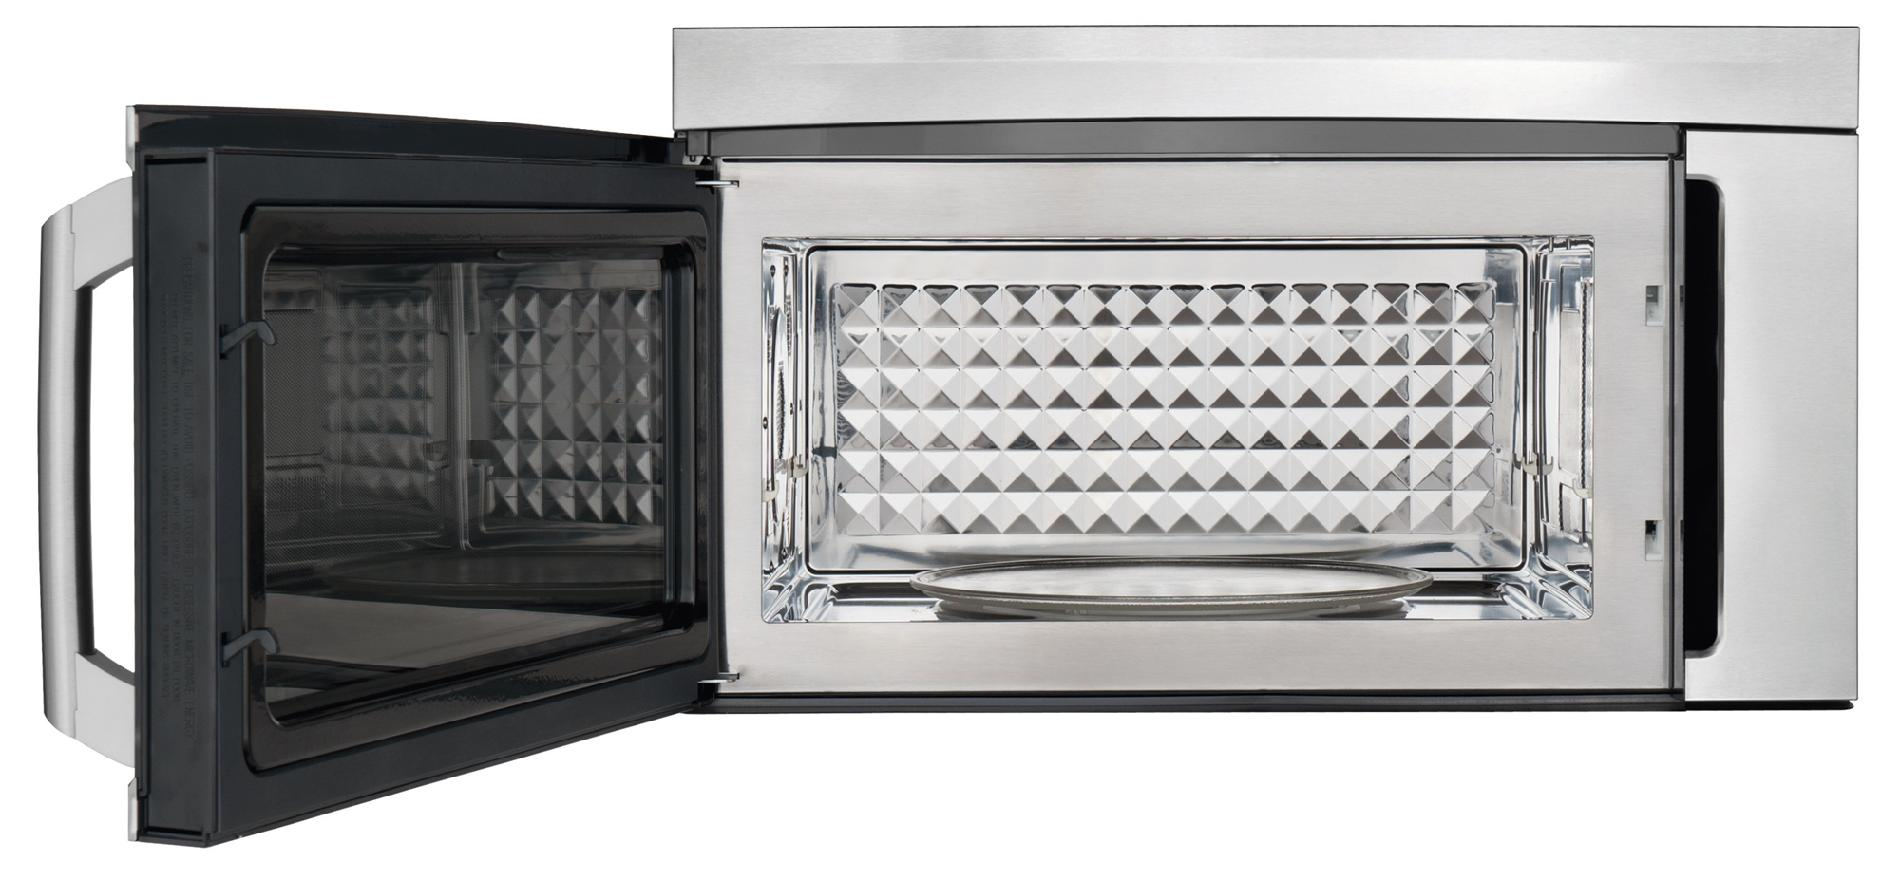 Electrolux 1.8 cu. ft. Over-the-Range Convection Microwave Oven w/ Bottom Controls - Stainless Steel